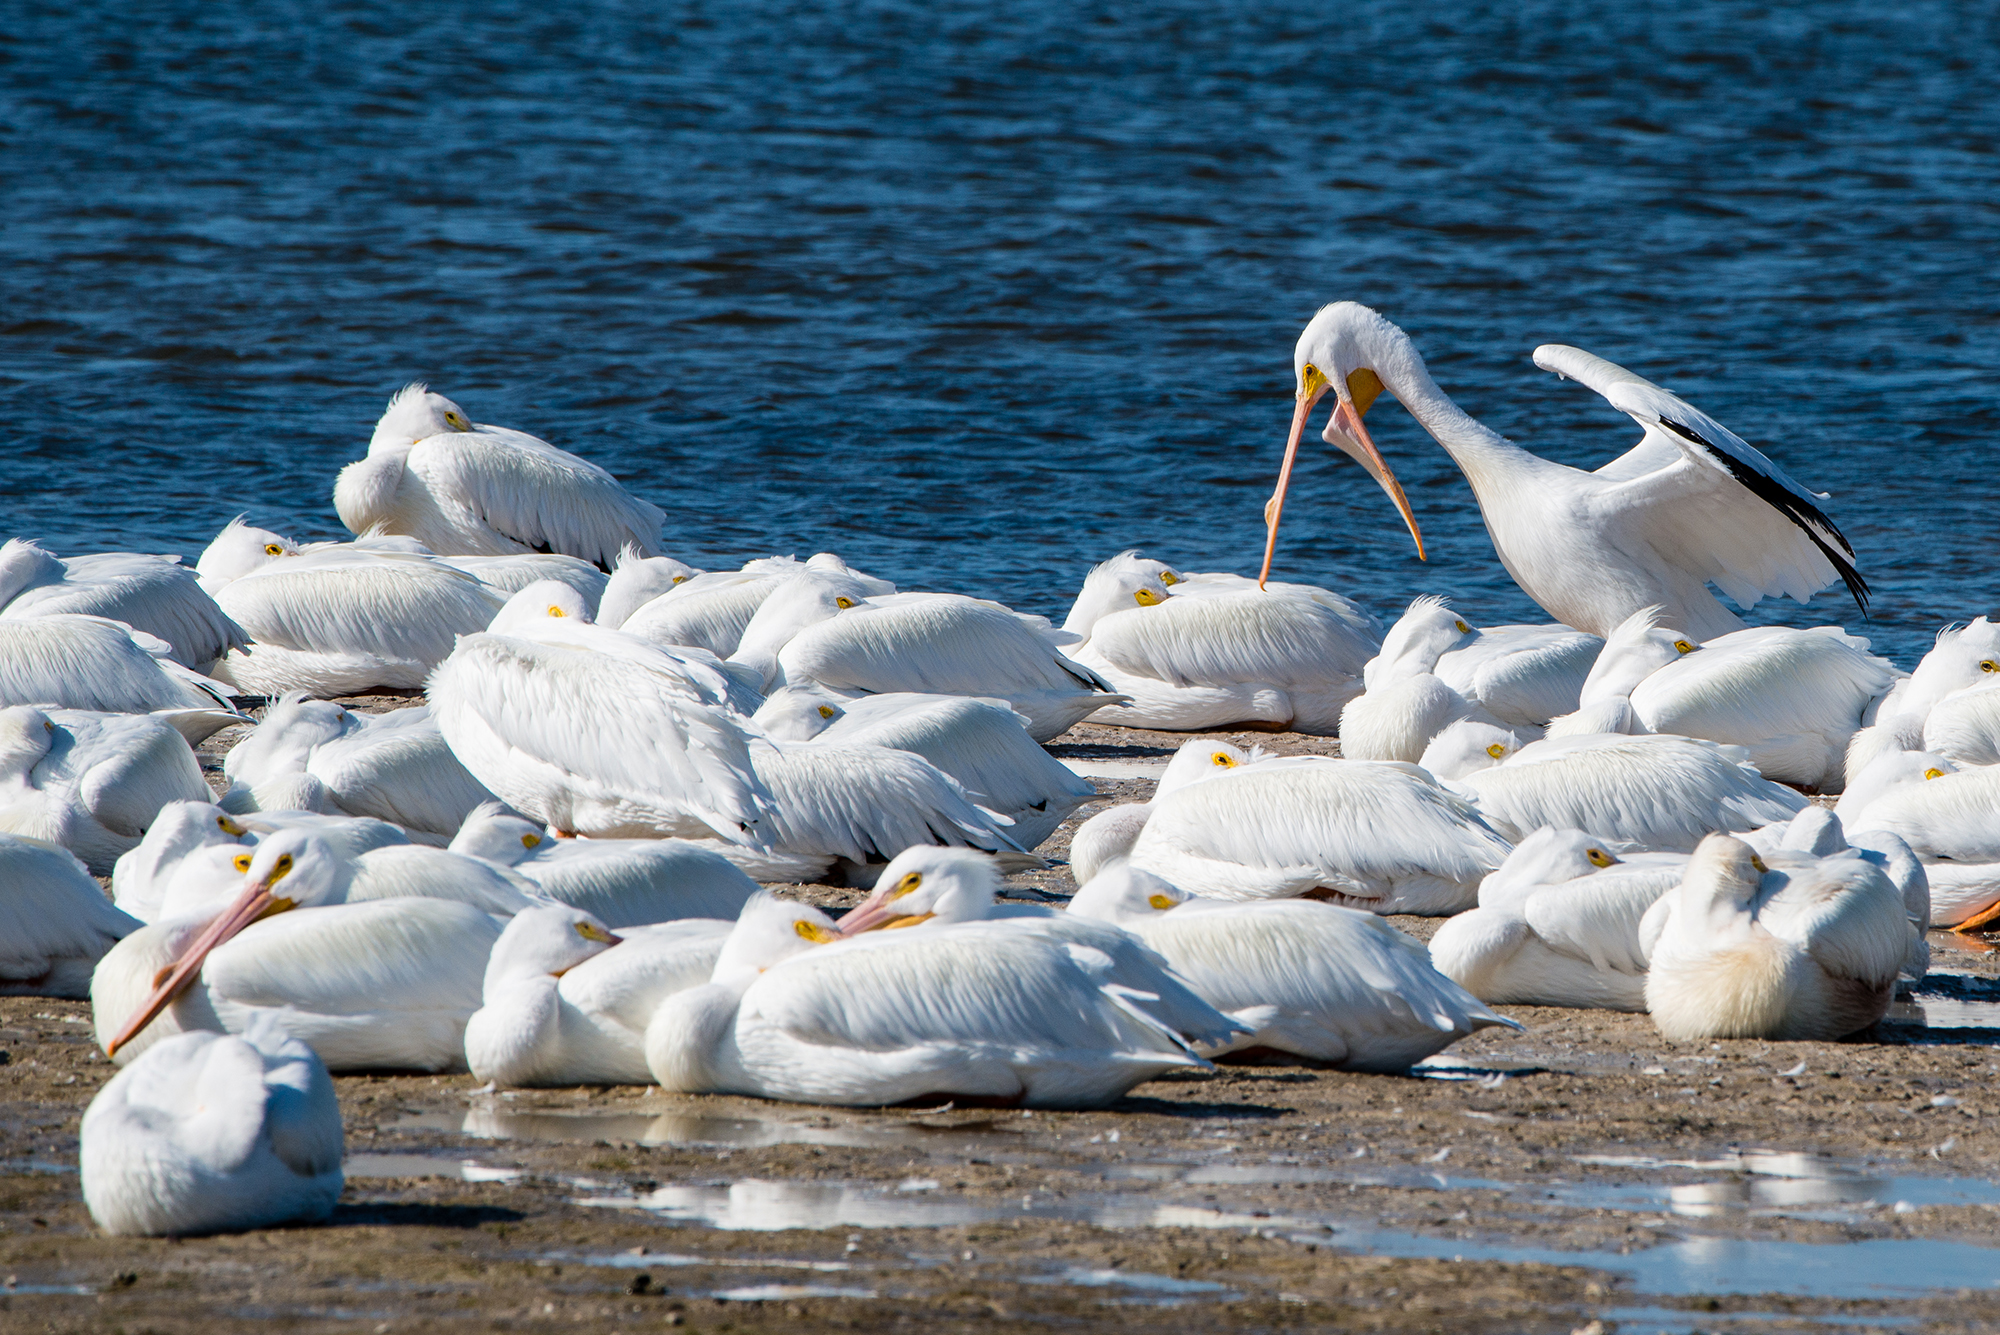 #whitepelicans, #pelican, #sanibel, #dingdarling, #morningnap, #wakeup, #wakeupcall, #nikon, #tamron, #RRS, #nature, #behavior